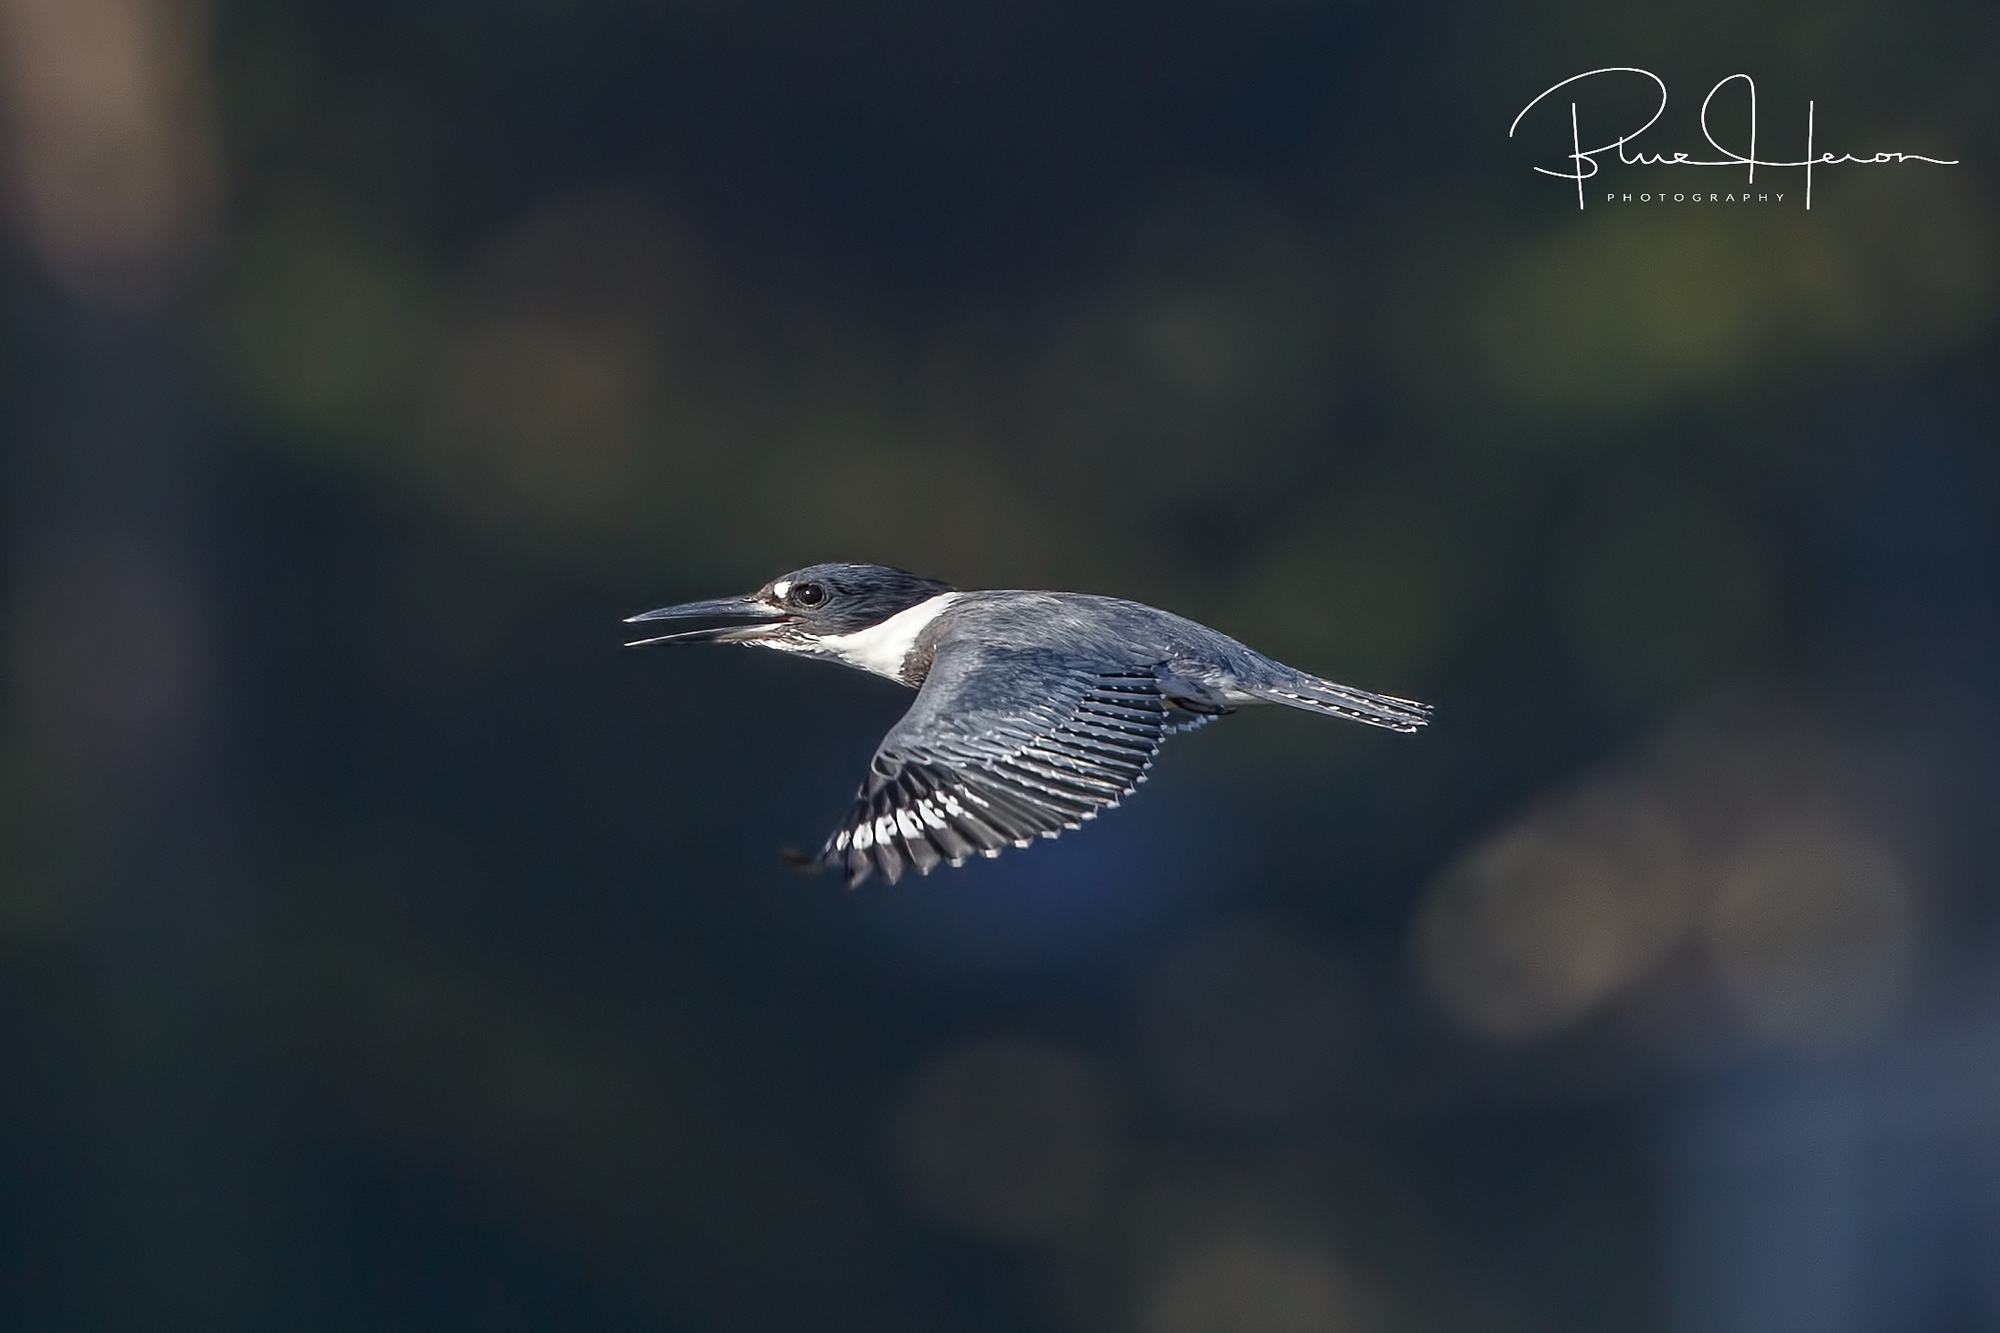 The Belted Kingfishers are back on the Broward too!